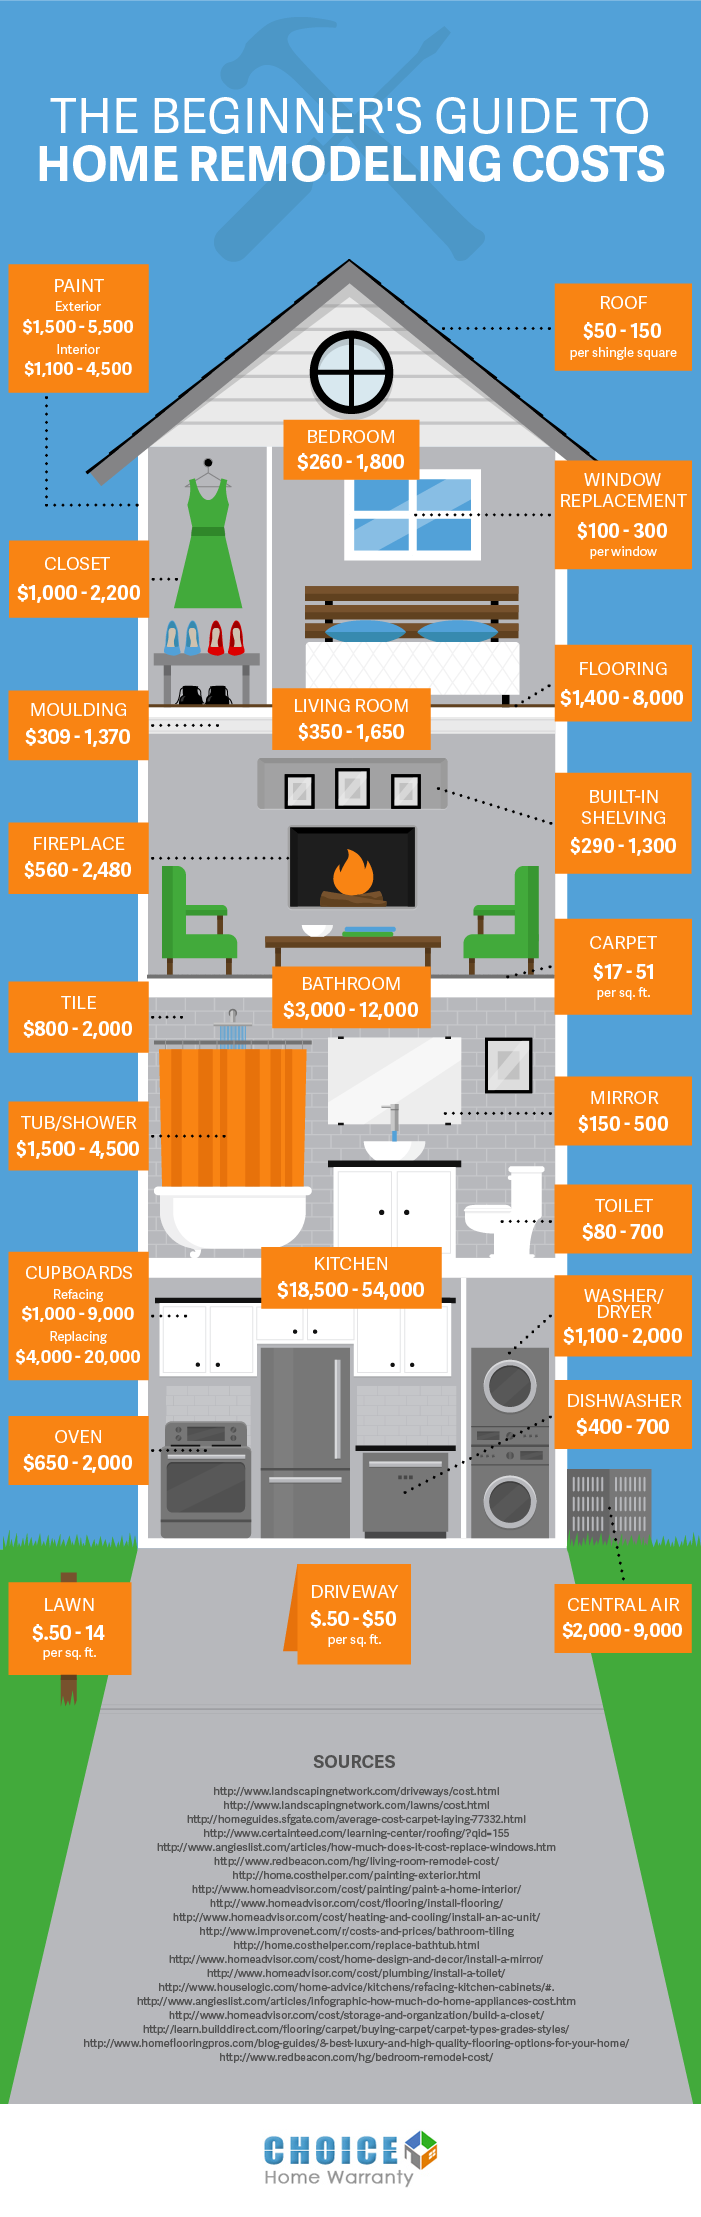 A Beginneru2019s Guide to Home Remodeling Costs - Here's a great infograph that show the variety and cost of home improvements that can add value to your home. Great article from luke1428.com by Brian Fourman